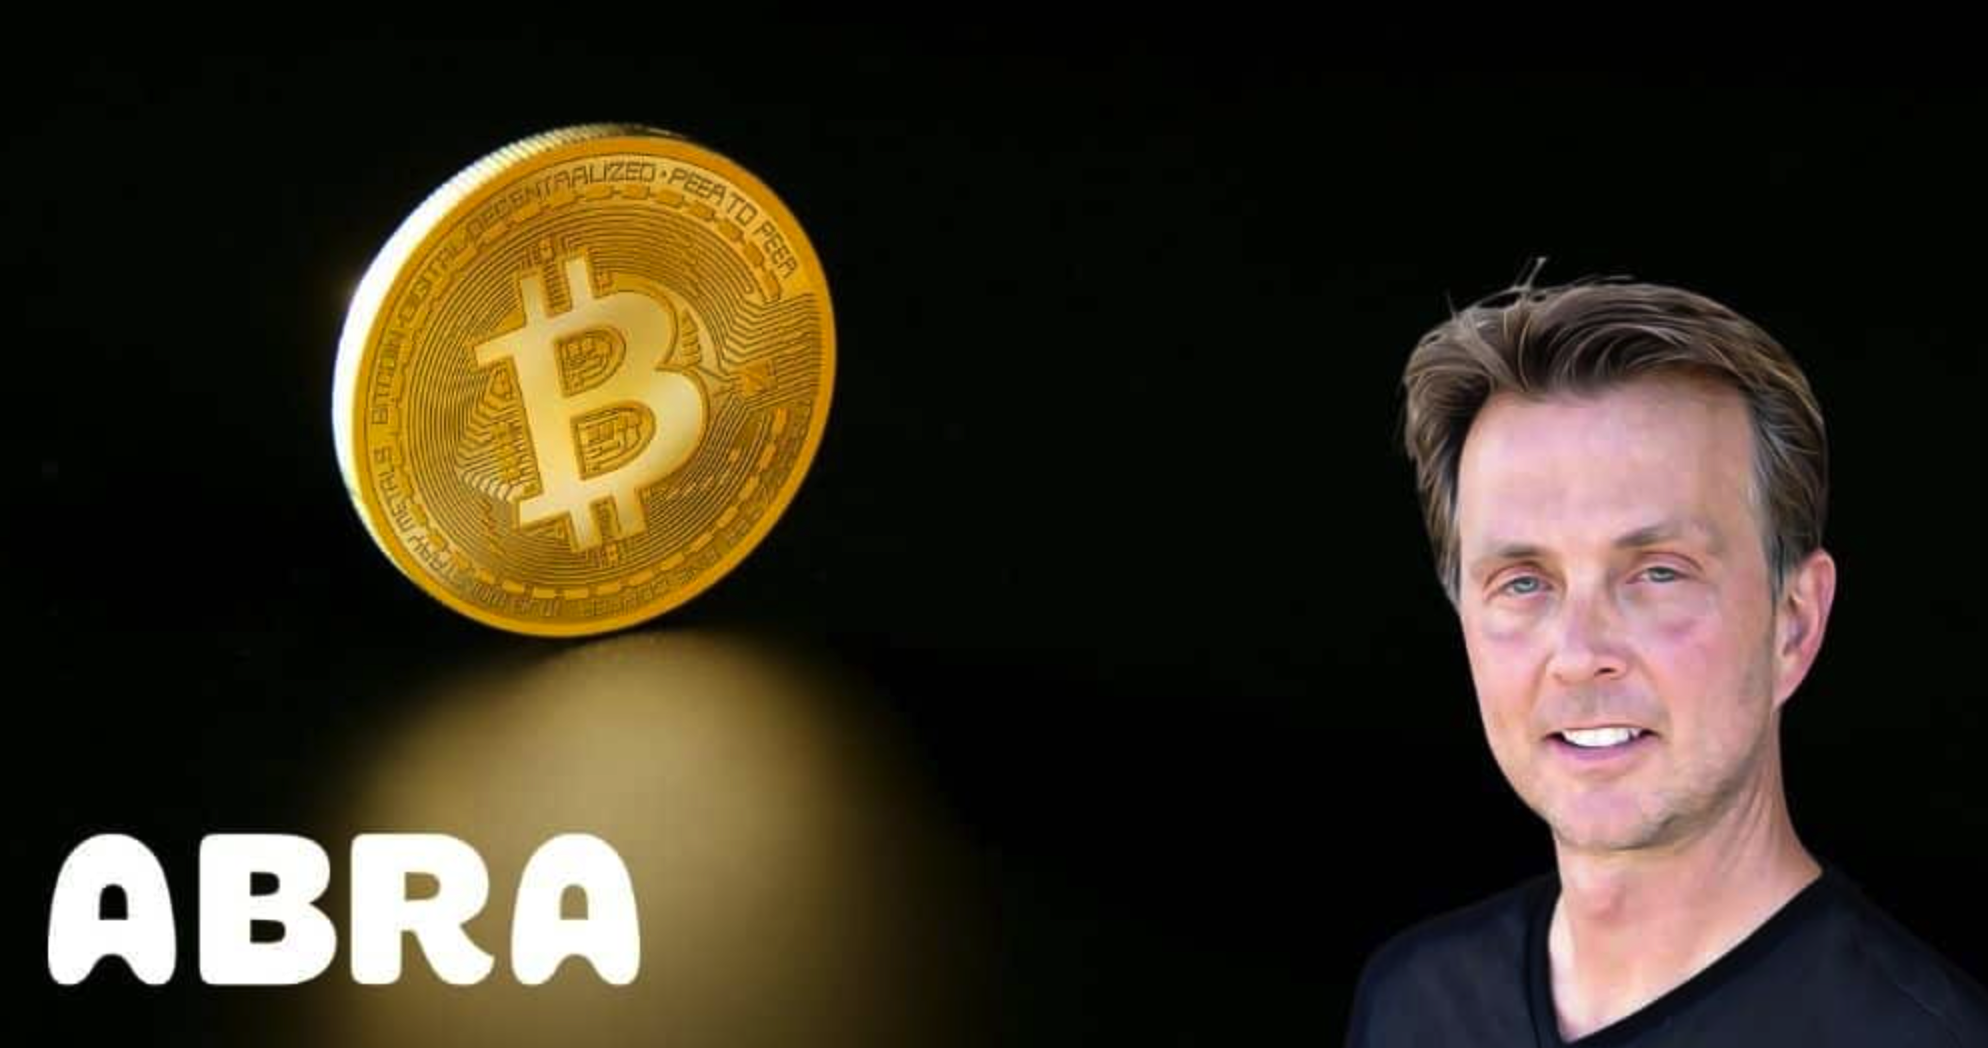 CEO of Abra has predicted the Bitcoin price could move up to $250,000 if corporations keep on buying BTC - AZCoin News